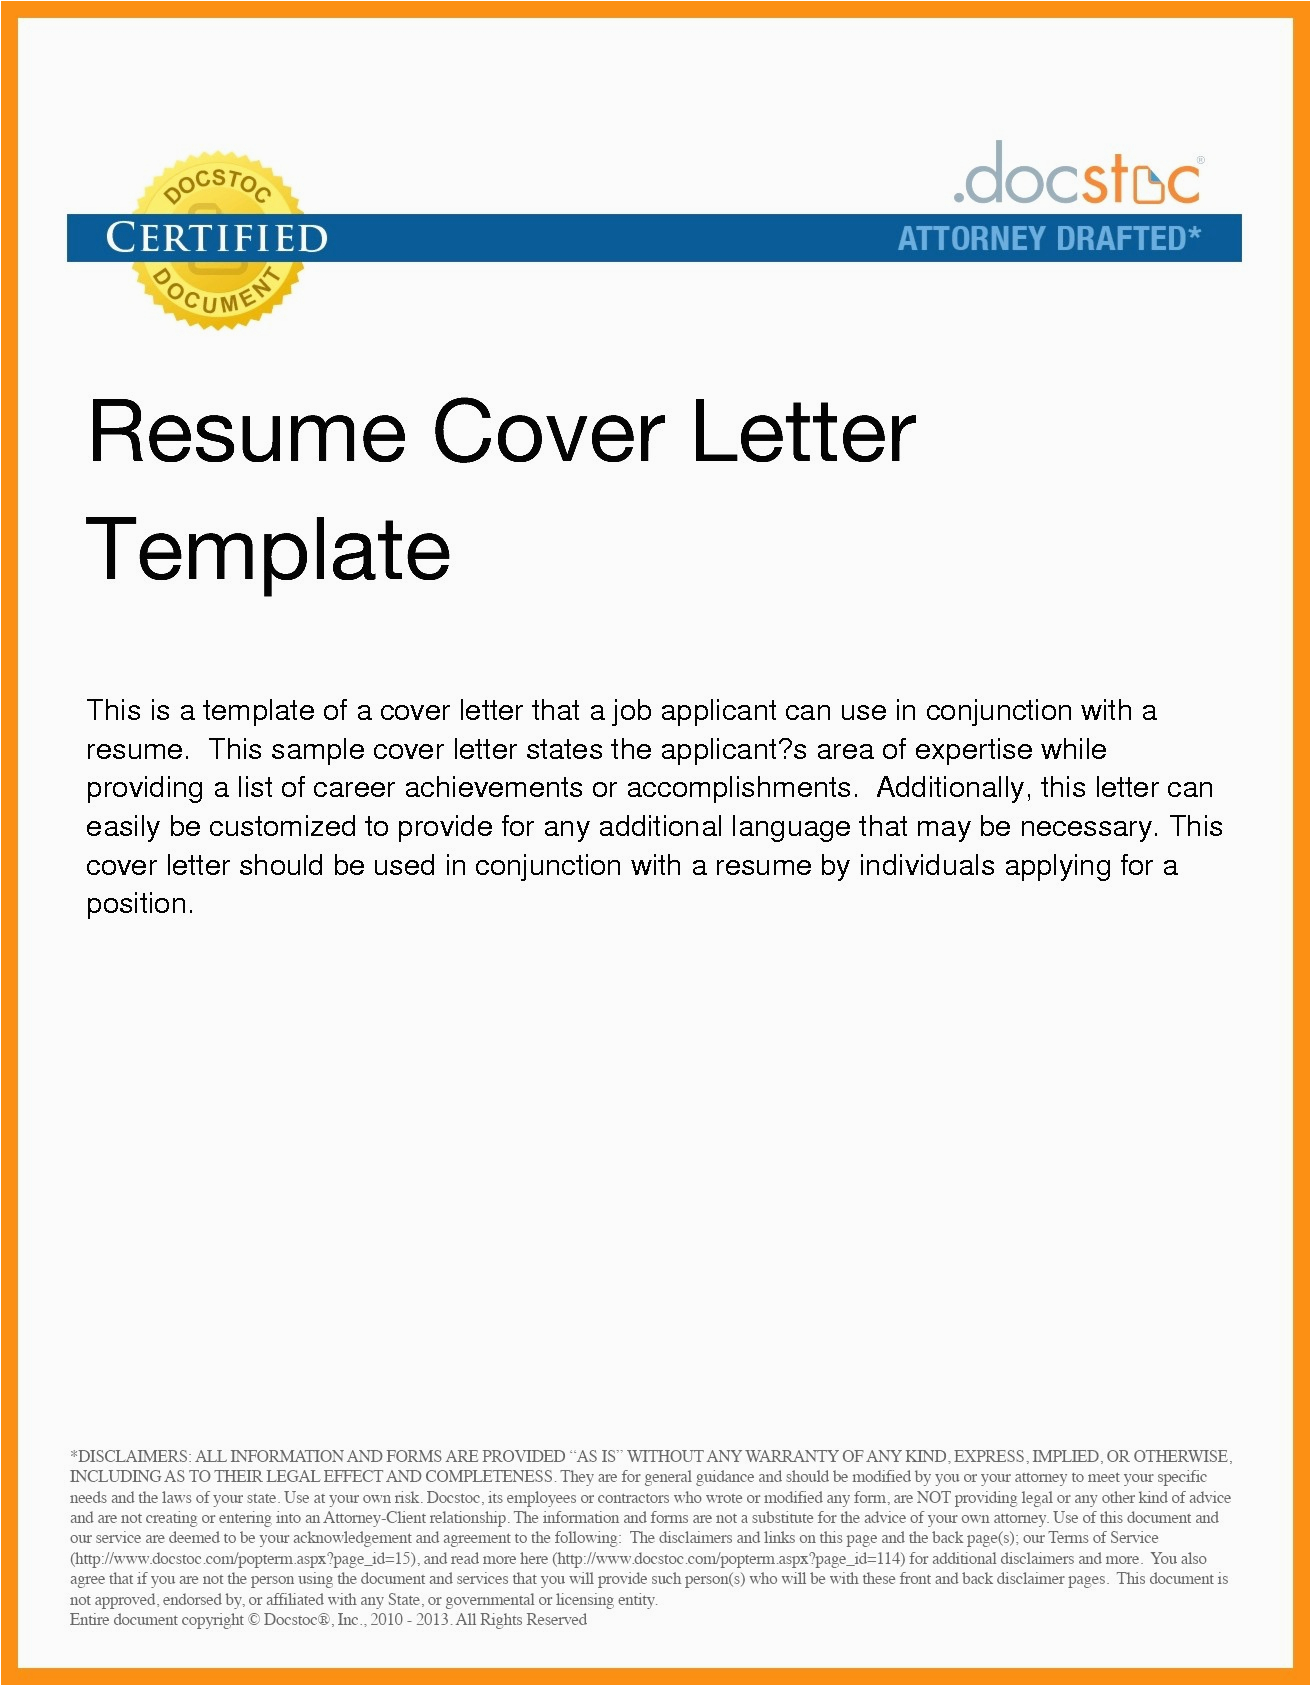 Sample Email Letter for Sending Resume Sending Resume and Cover Letter by Email Collection